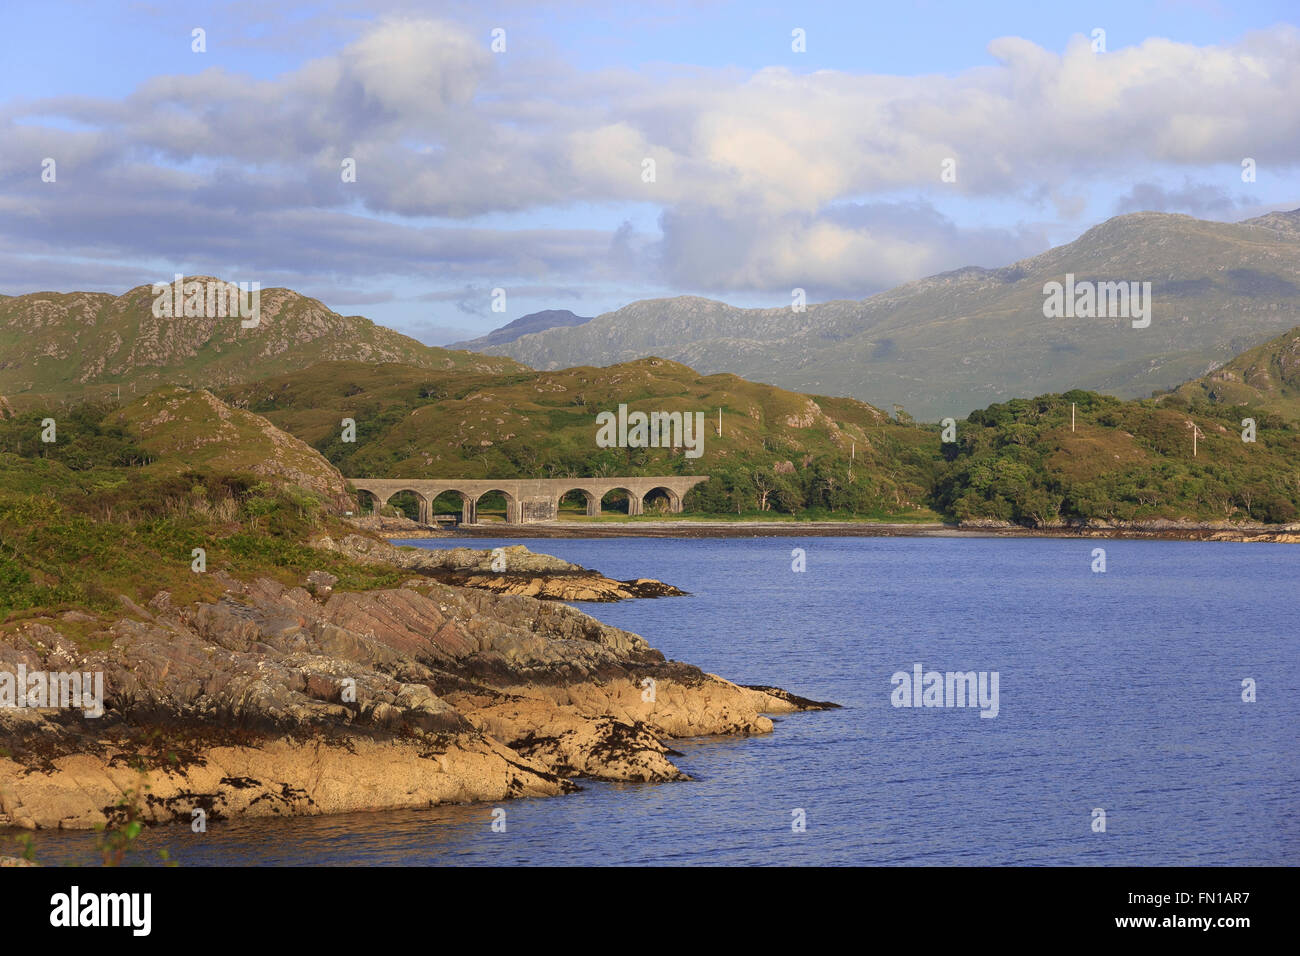 Loch nan Uamh on the Road to the Isles, from where Bonnie Prince Charlie made his escape after defeat at Culloden. Stock Photo